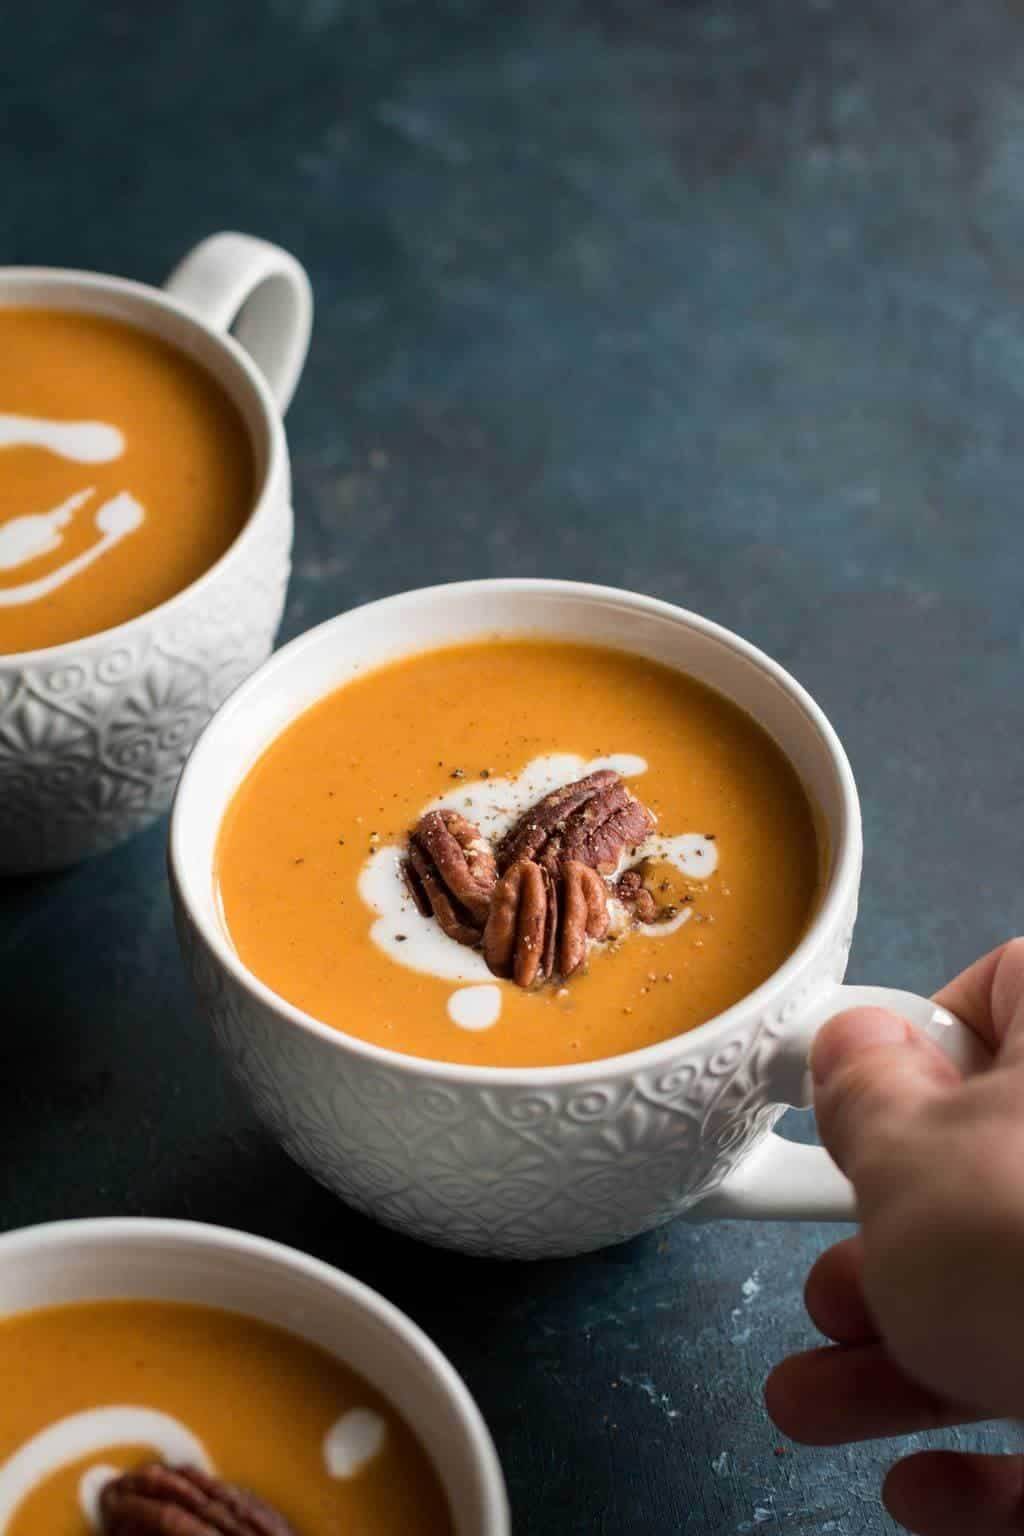 Coriander Sweet Potato Soup with Toasted Cinnamon Pecans